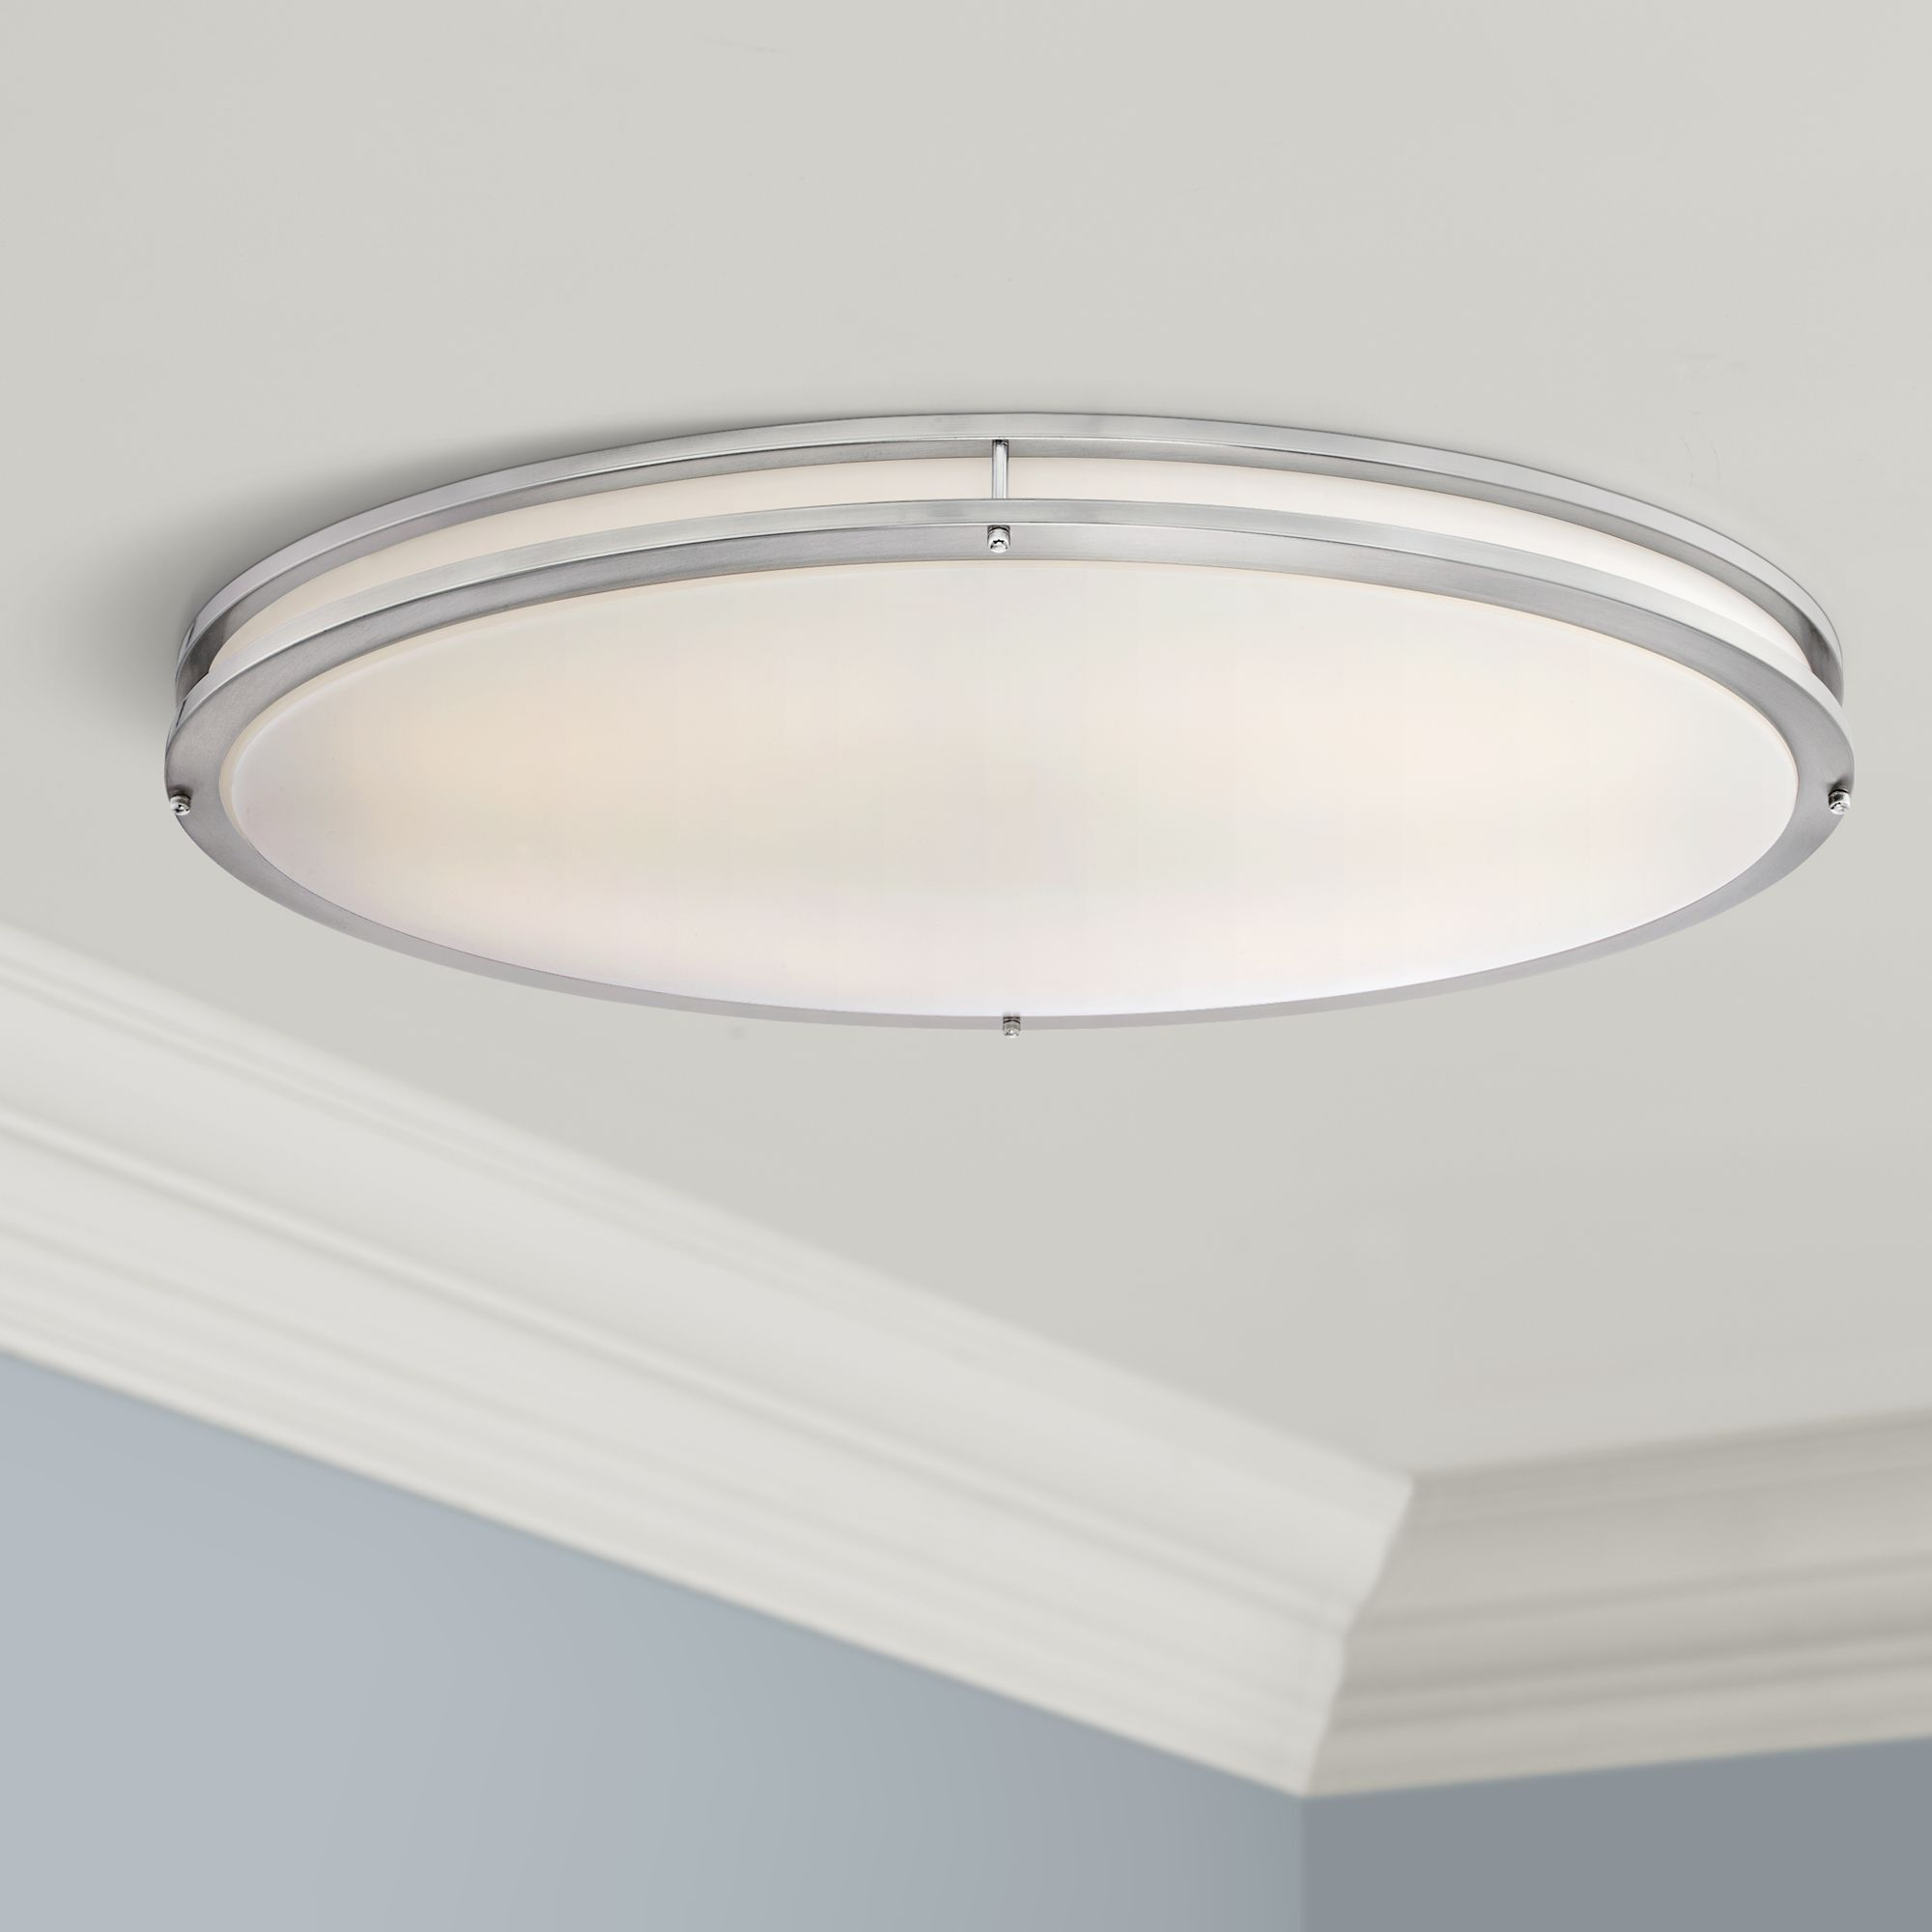 Leeds 32 1/2  Wide Satin Nickel Oval LED Ceiling Light & Close to Ceiling Light Fixtures - Decorative Lighting | Lamps Plus azcodes.com